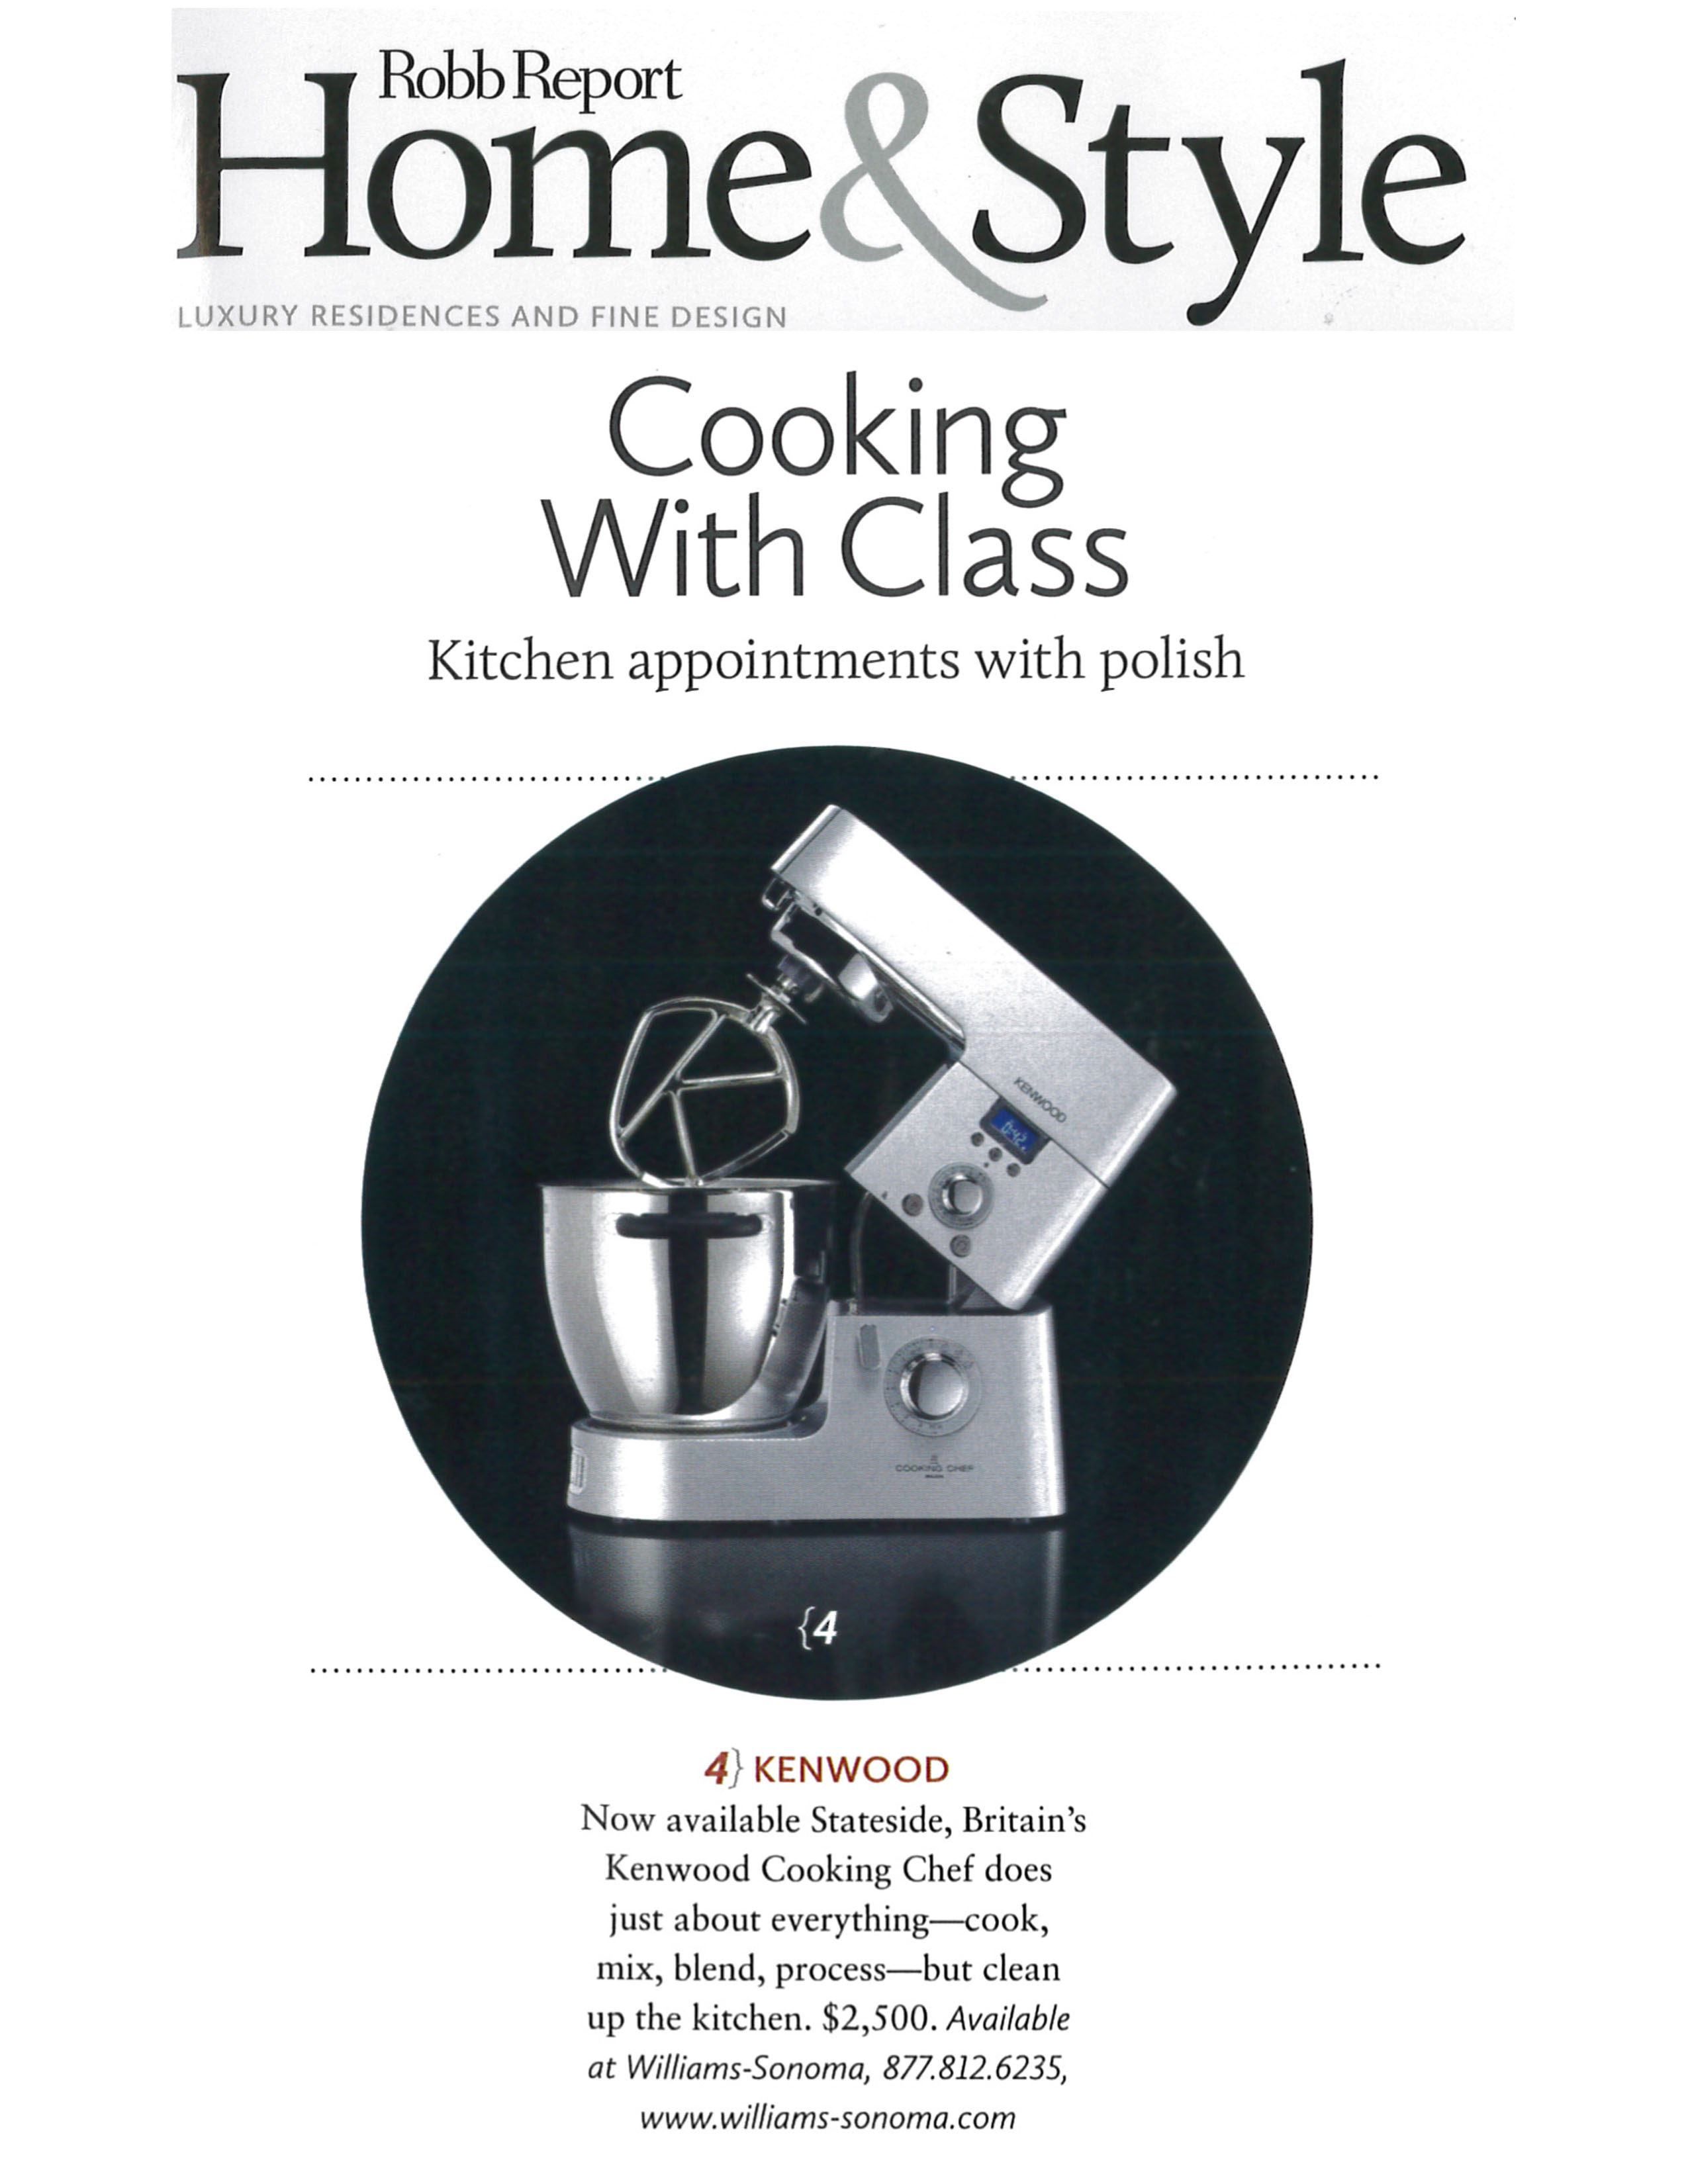 Cooking Chef in Robb Report